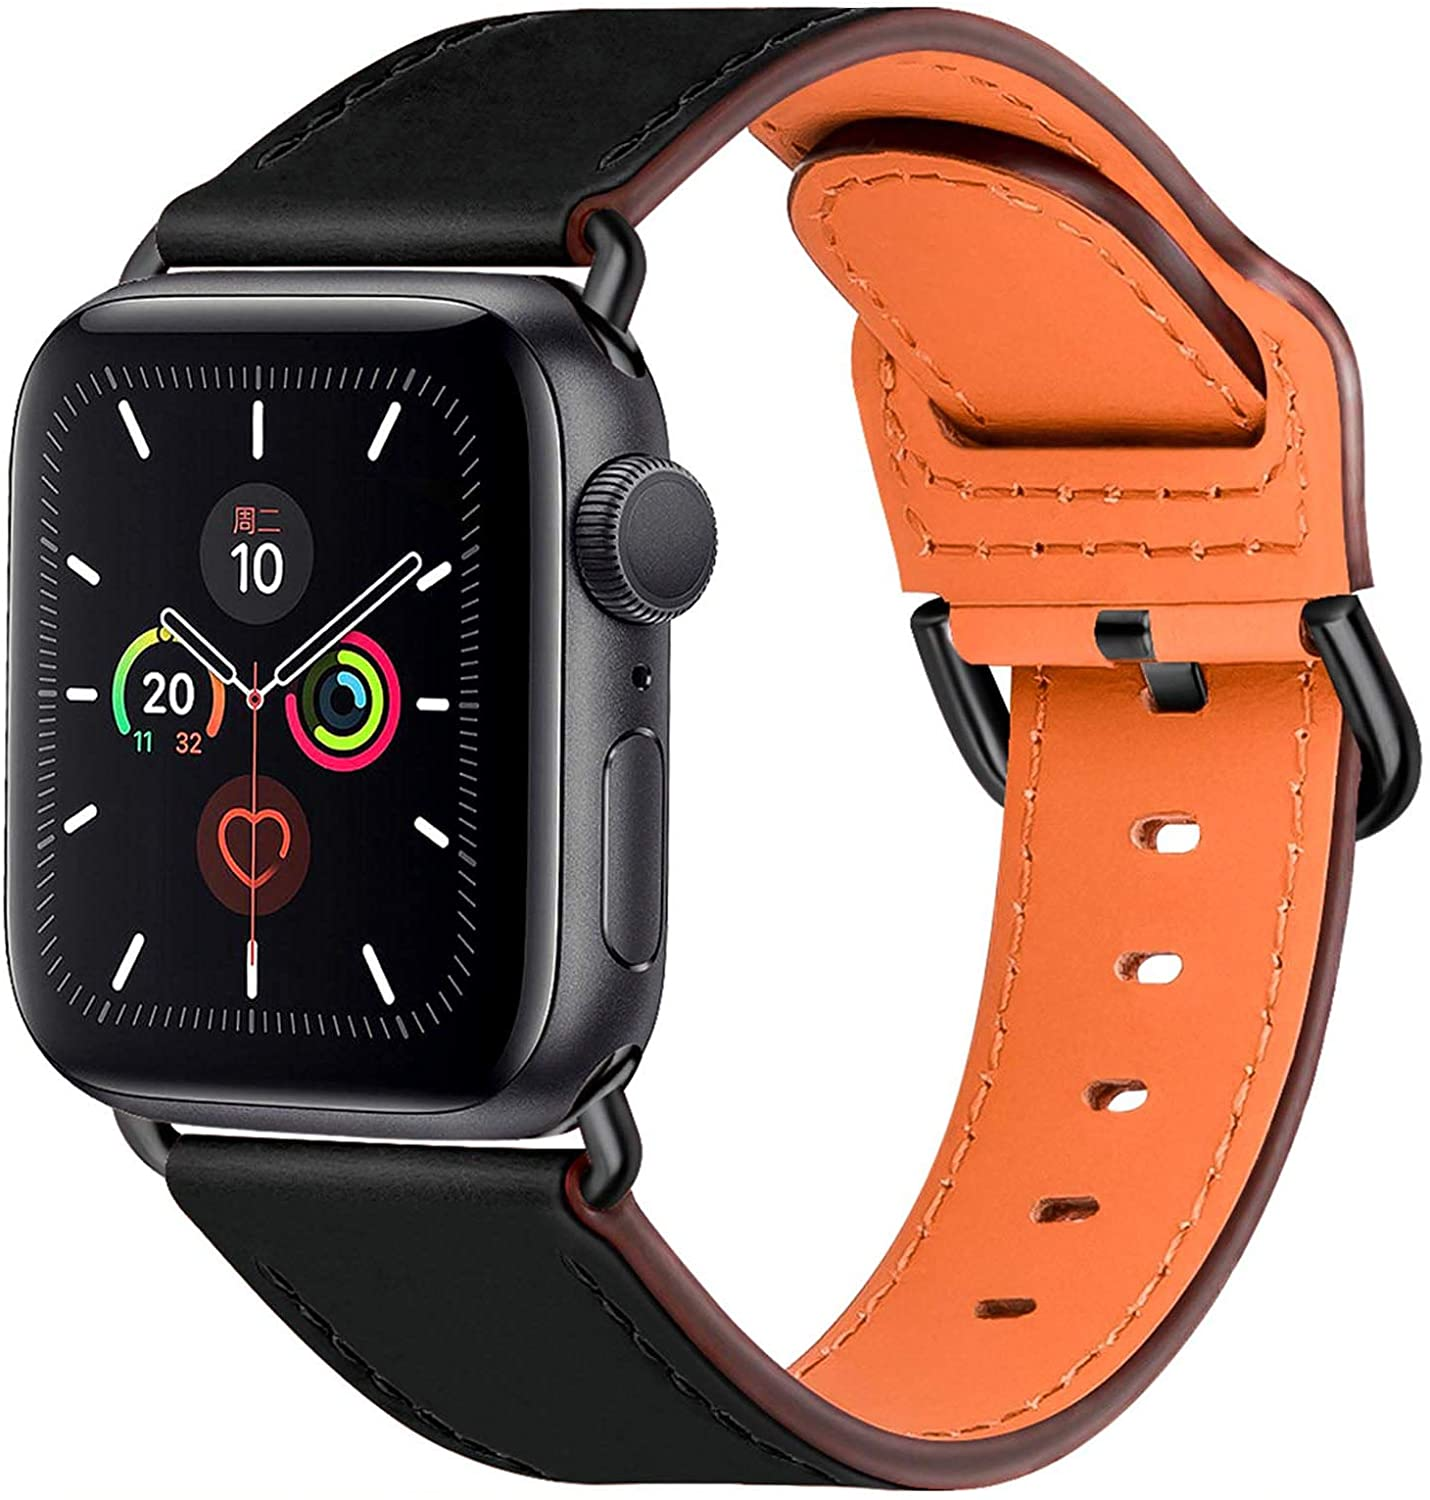 Leather Band Compatible for Apple Watch Bands 38mm 40mm 42mm 44mm, Top Genuine Leather Replacement Smart Watch Strap for iWatch Series 6 5 4 3 2 1 SE for Men Women (Black/Black 38mm 40mm)